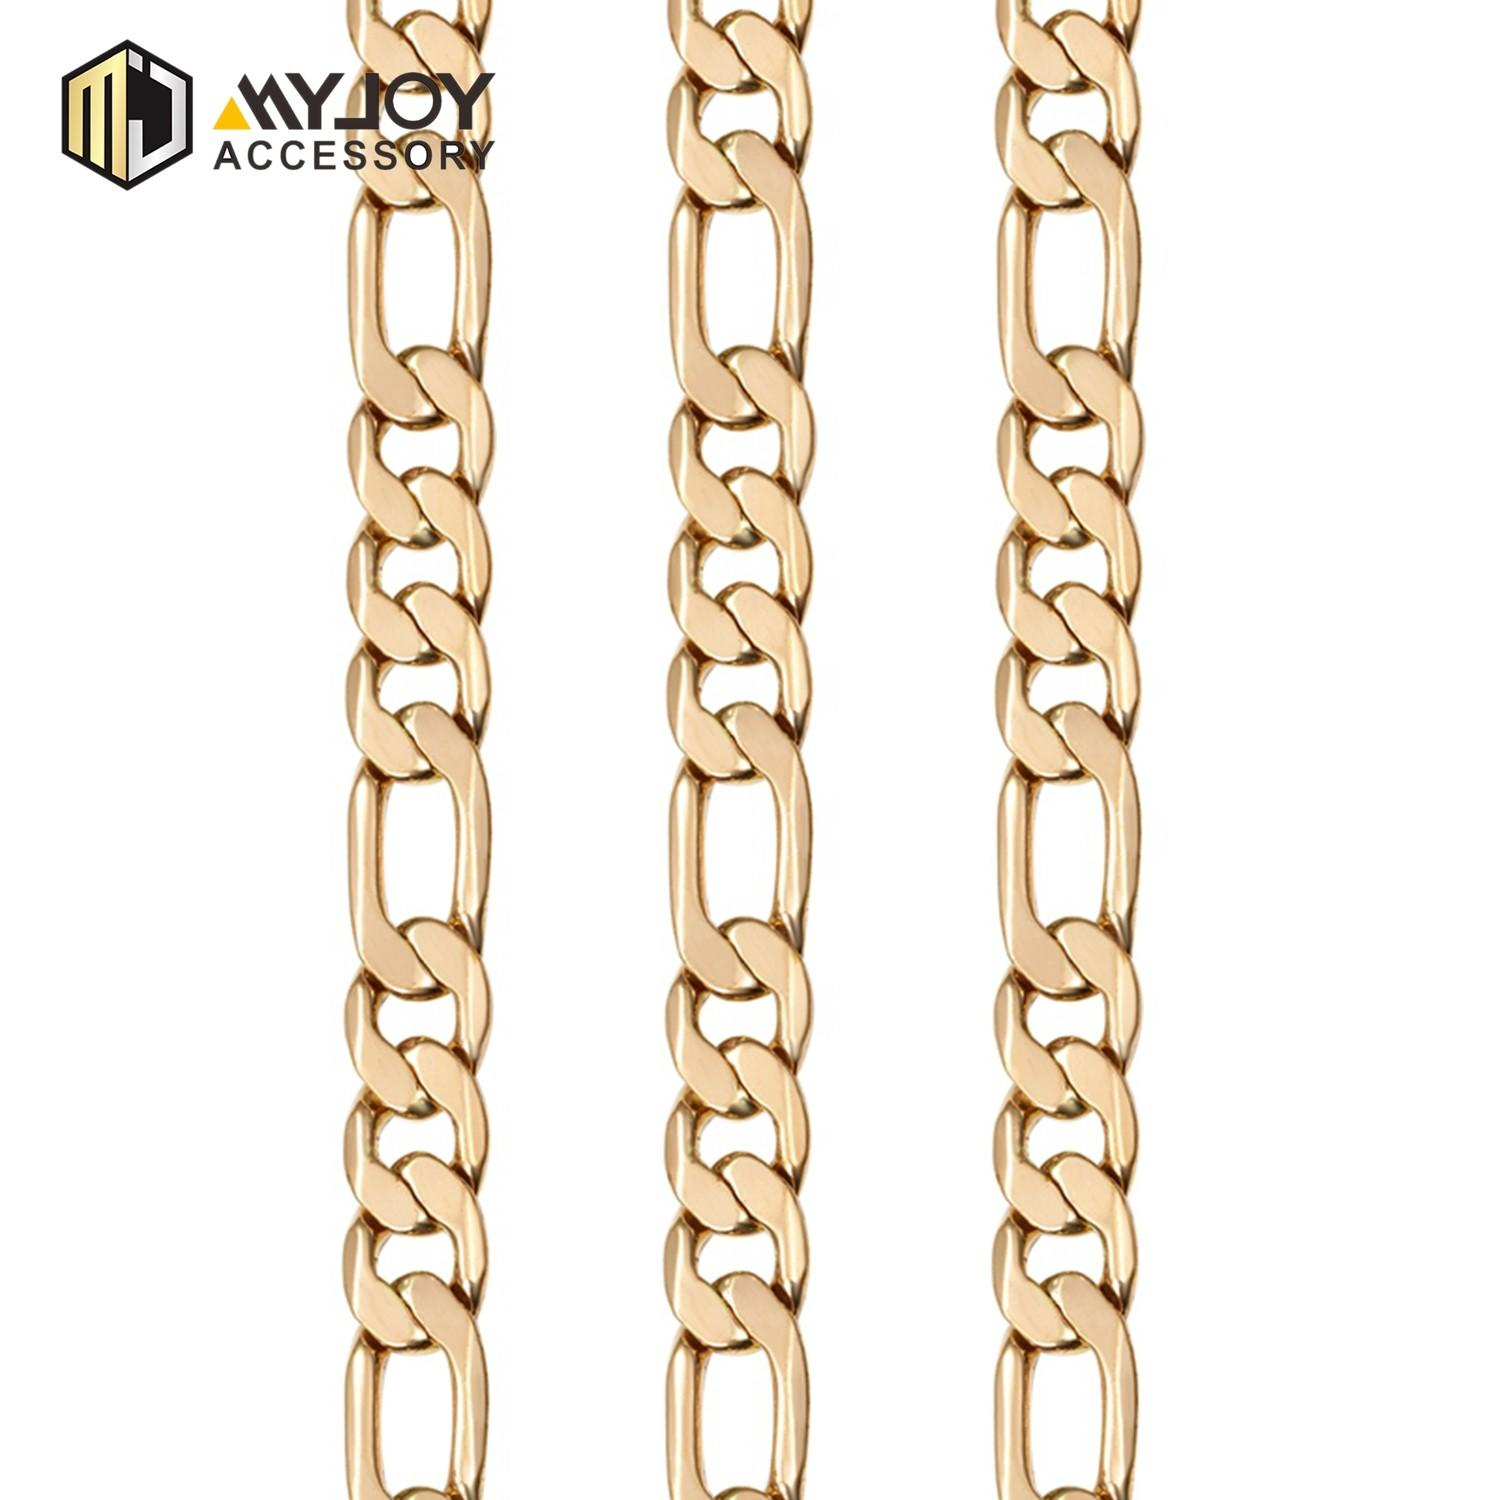 MYJOY Custom handbag chain strap stylish for handbag-1